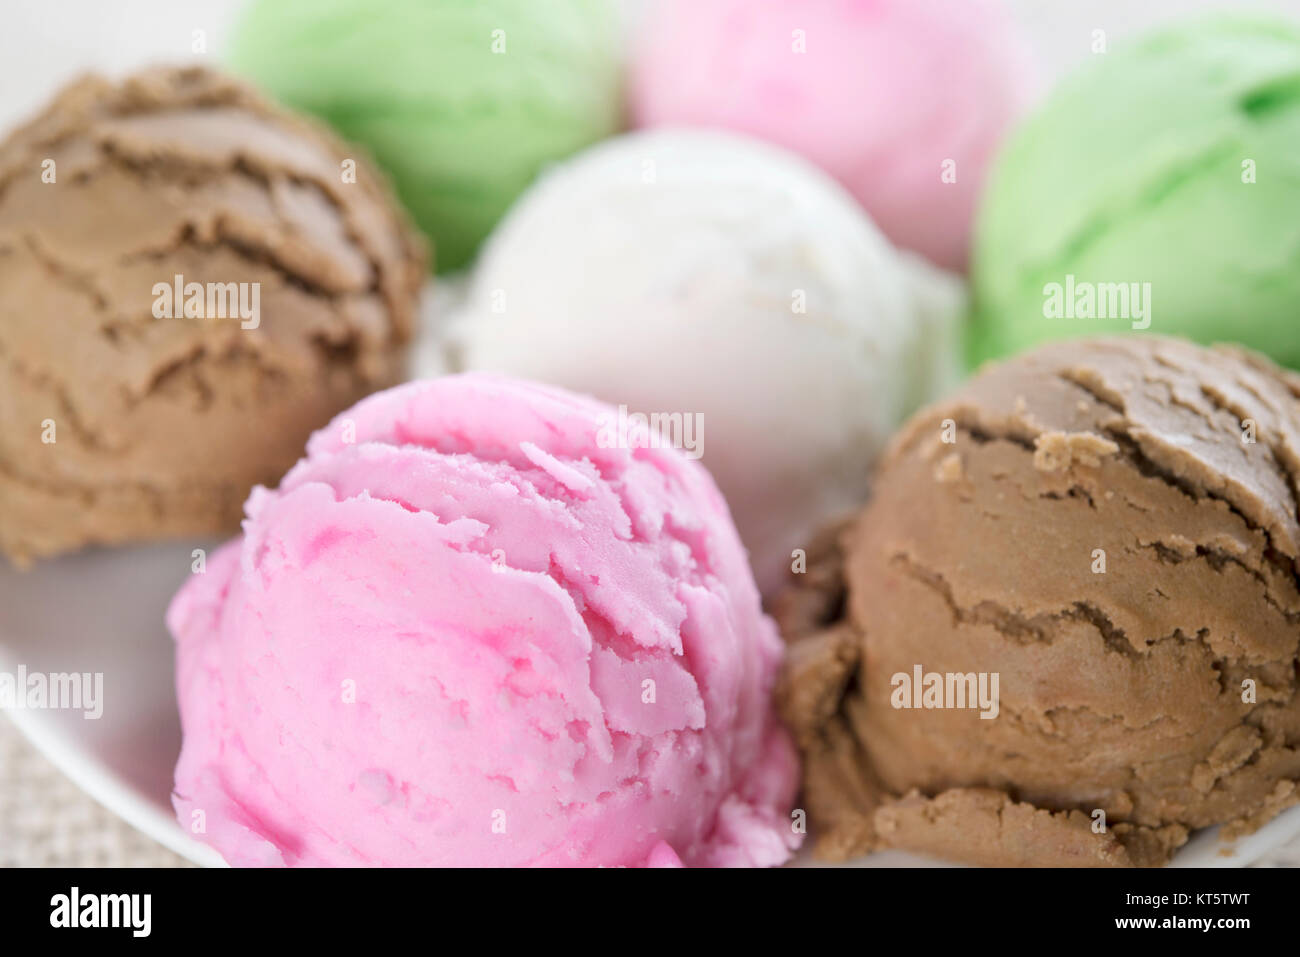 Close up assorted ice cream collection Stock Photo: 169774356 - Alamy